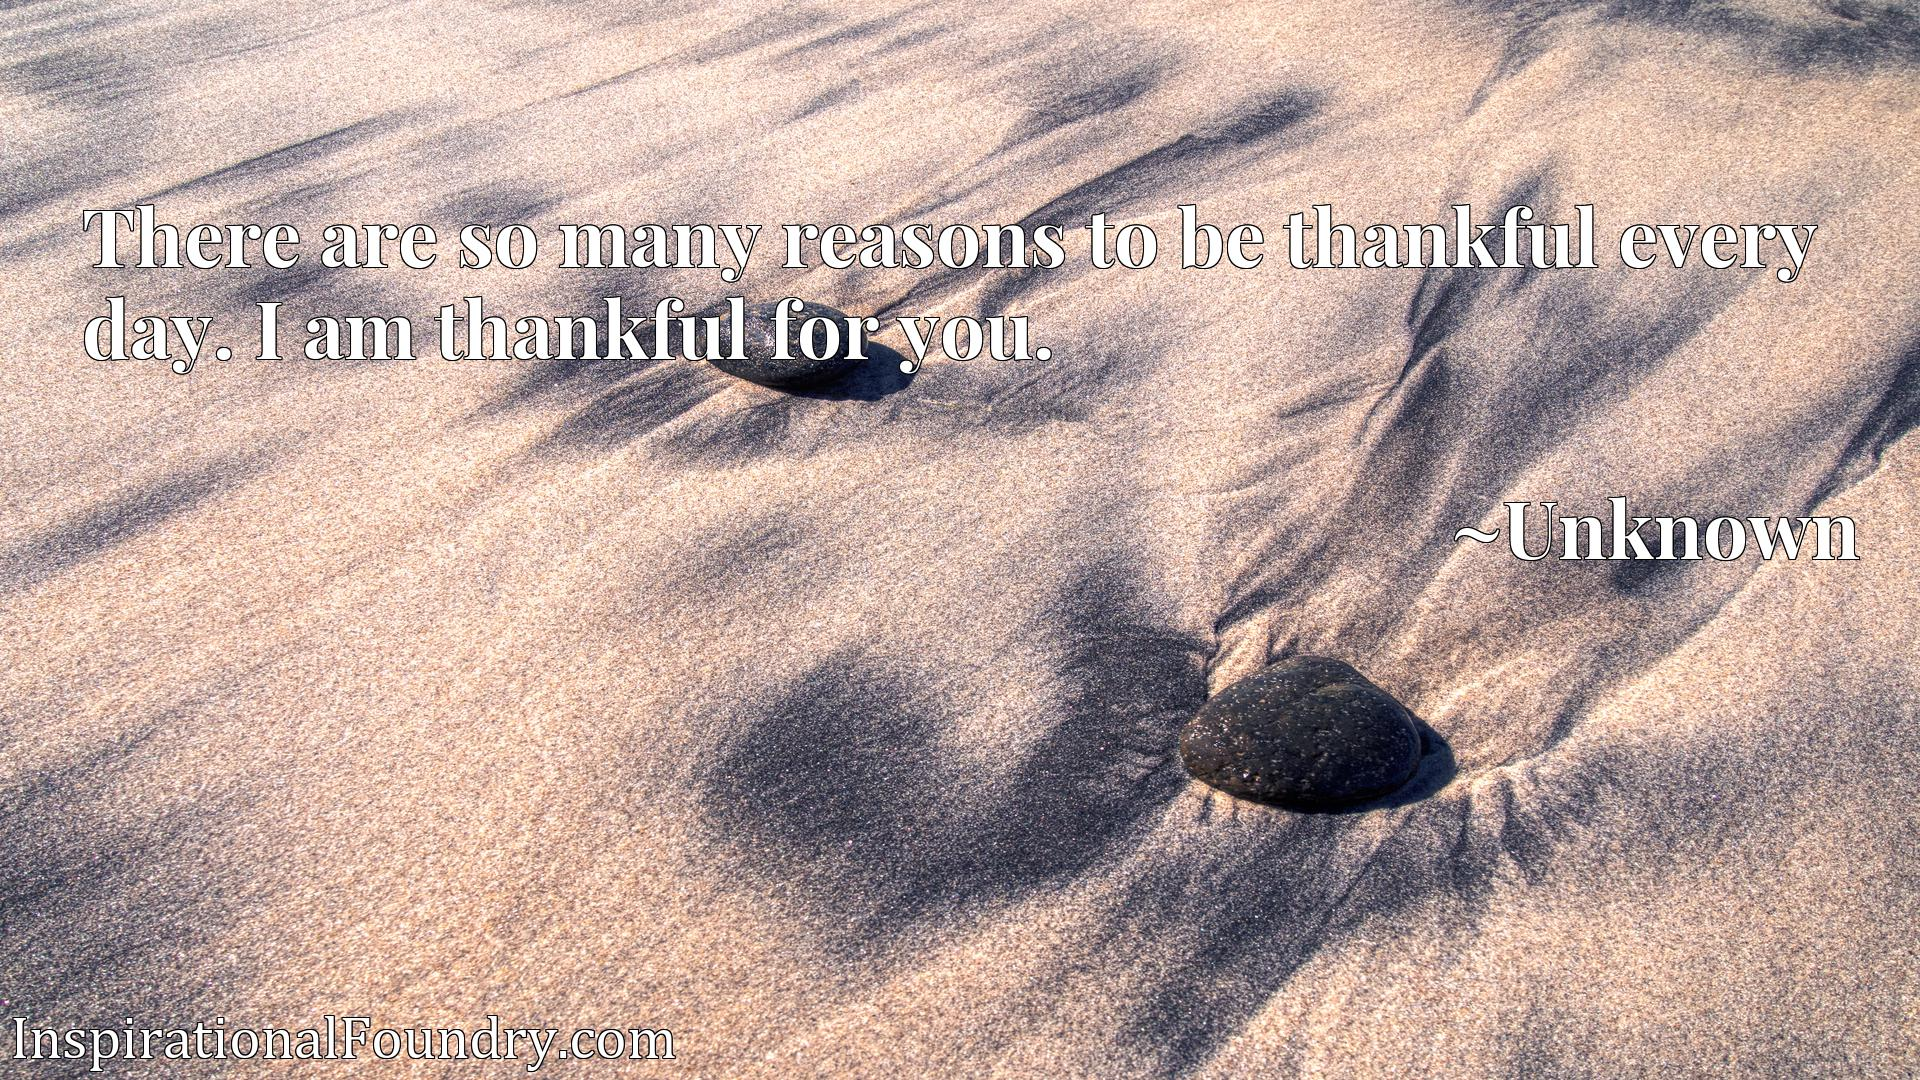 There are so many reasons to be thankful every day. I am thankful for you.